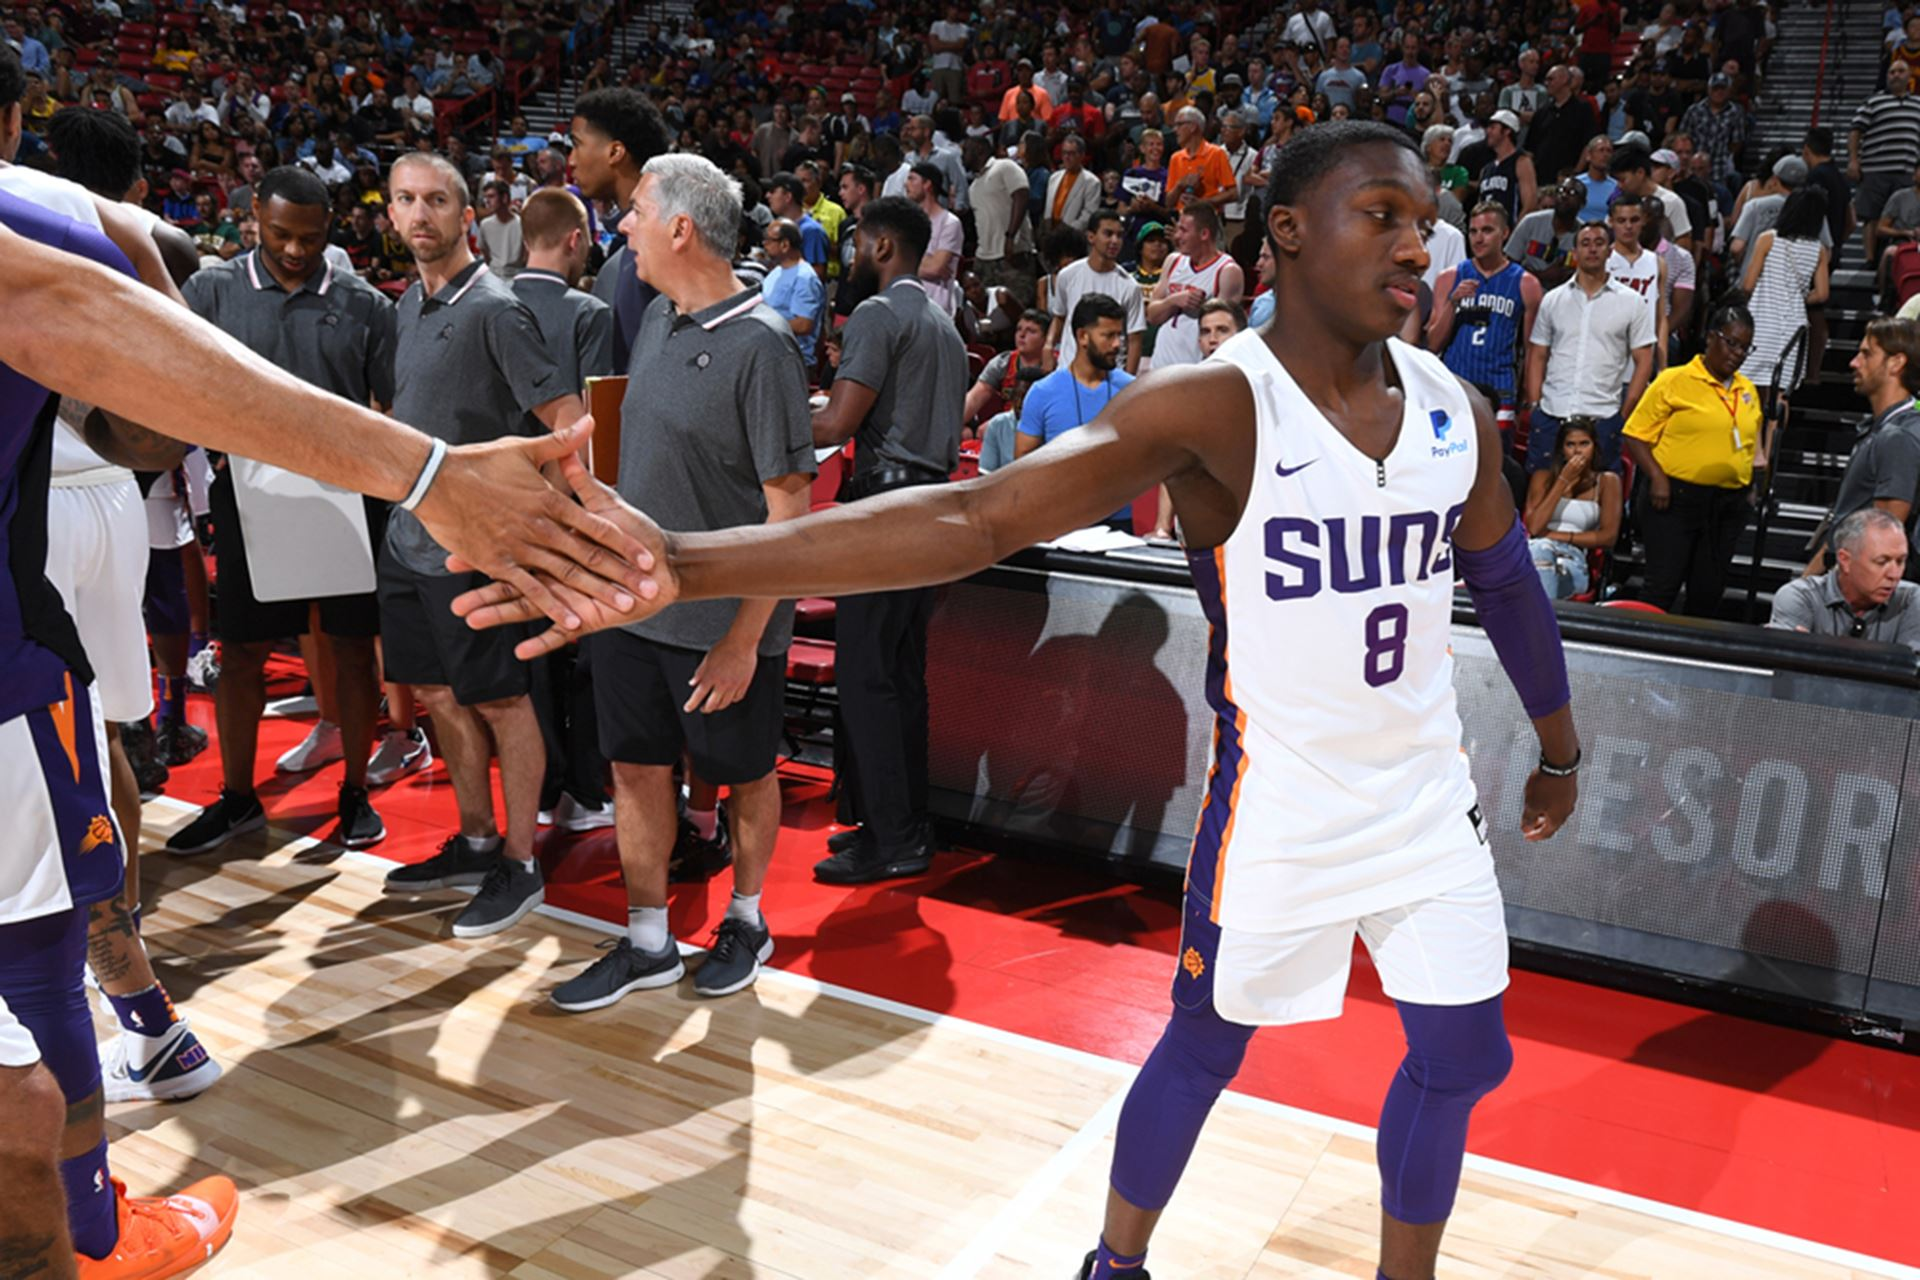 19_summer_suns_knicks_july_7_2019